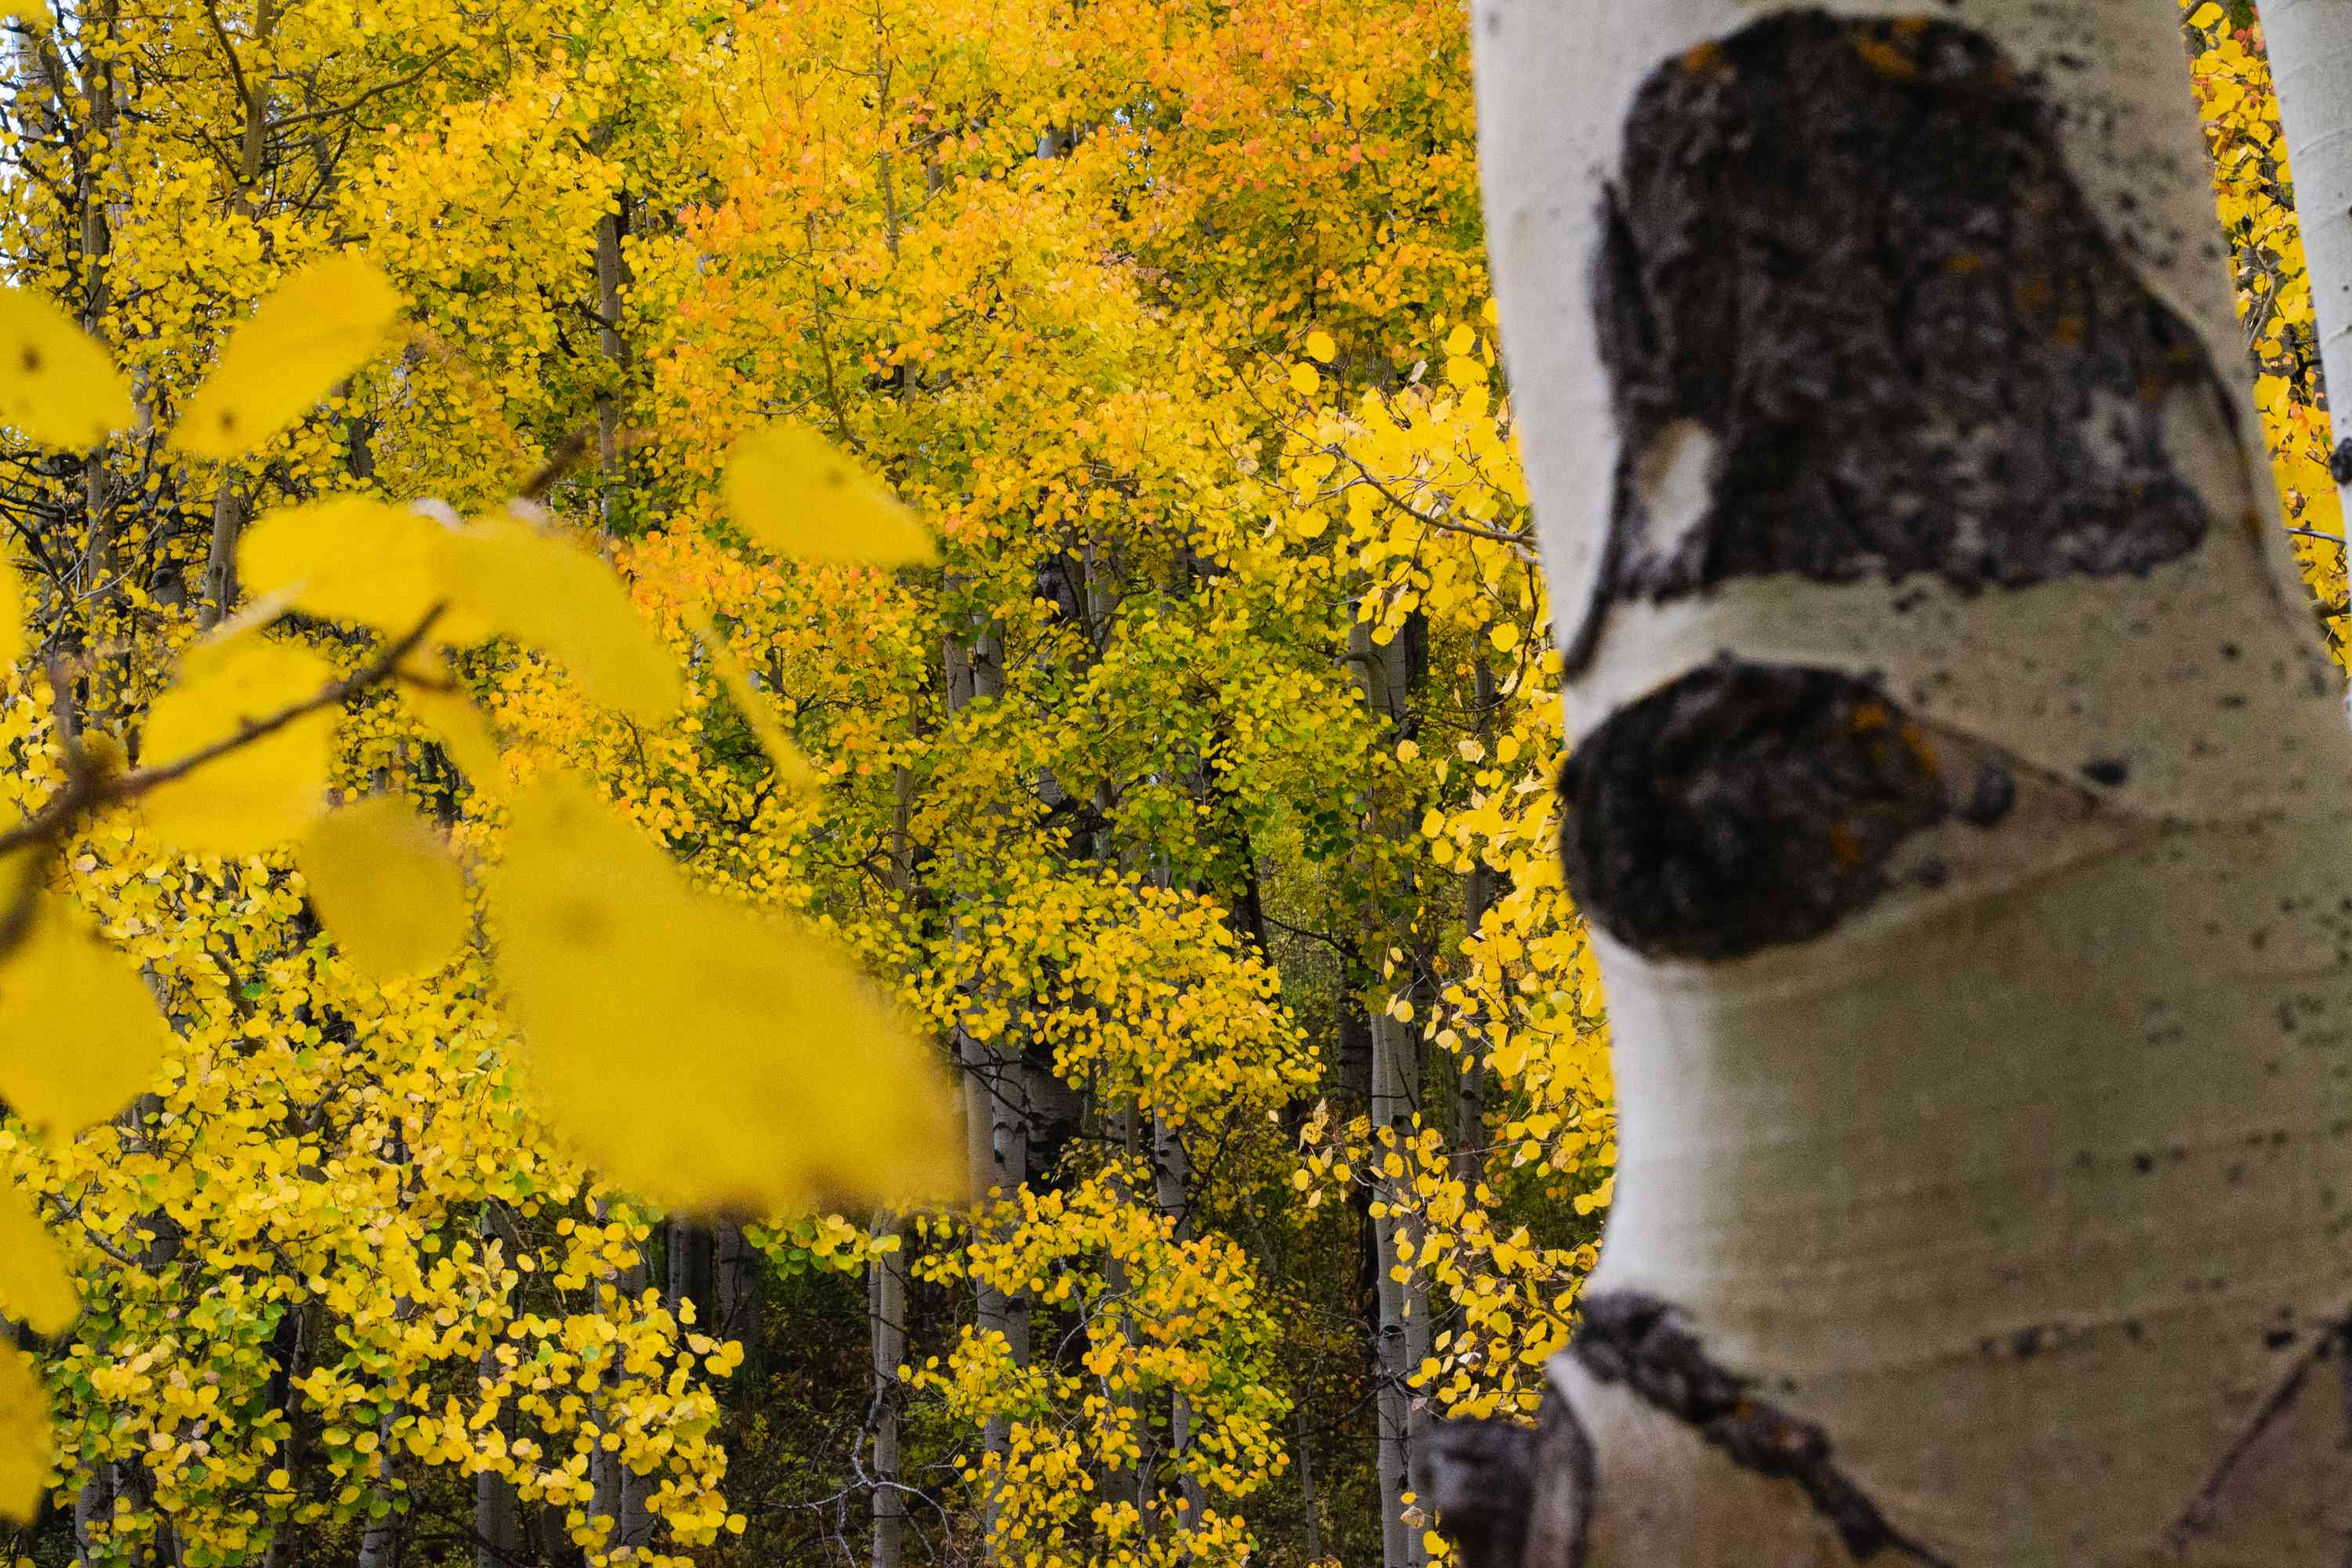 Quaking aspen tree with white tree bark in front of aspen trees with yellow leaves